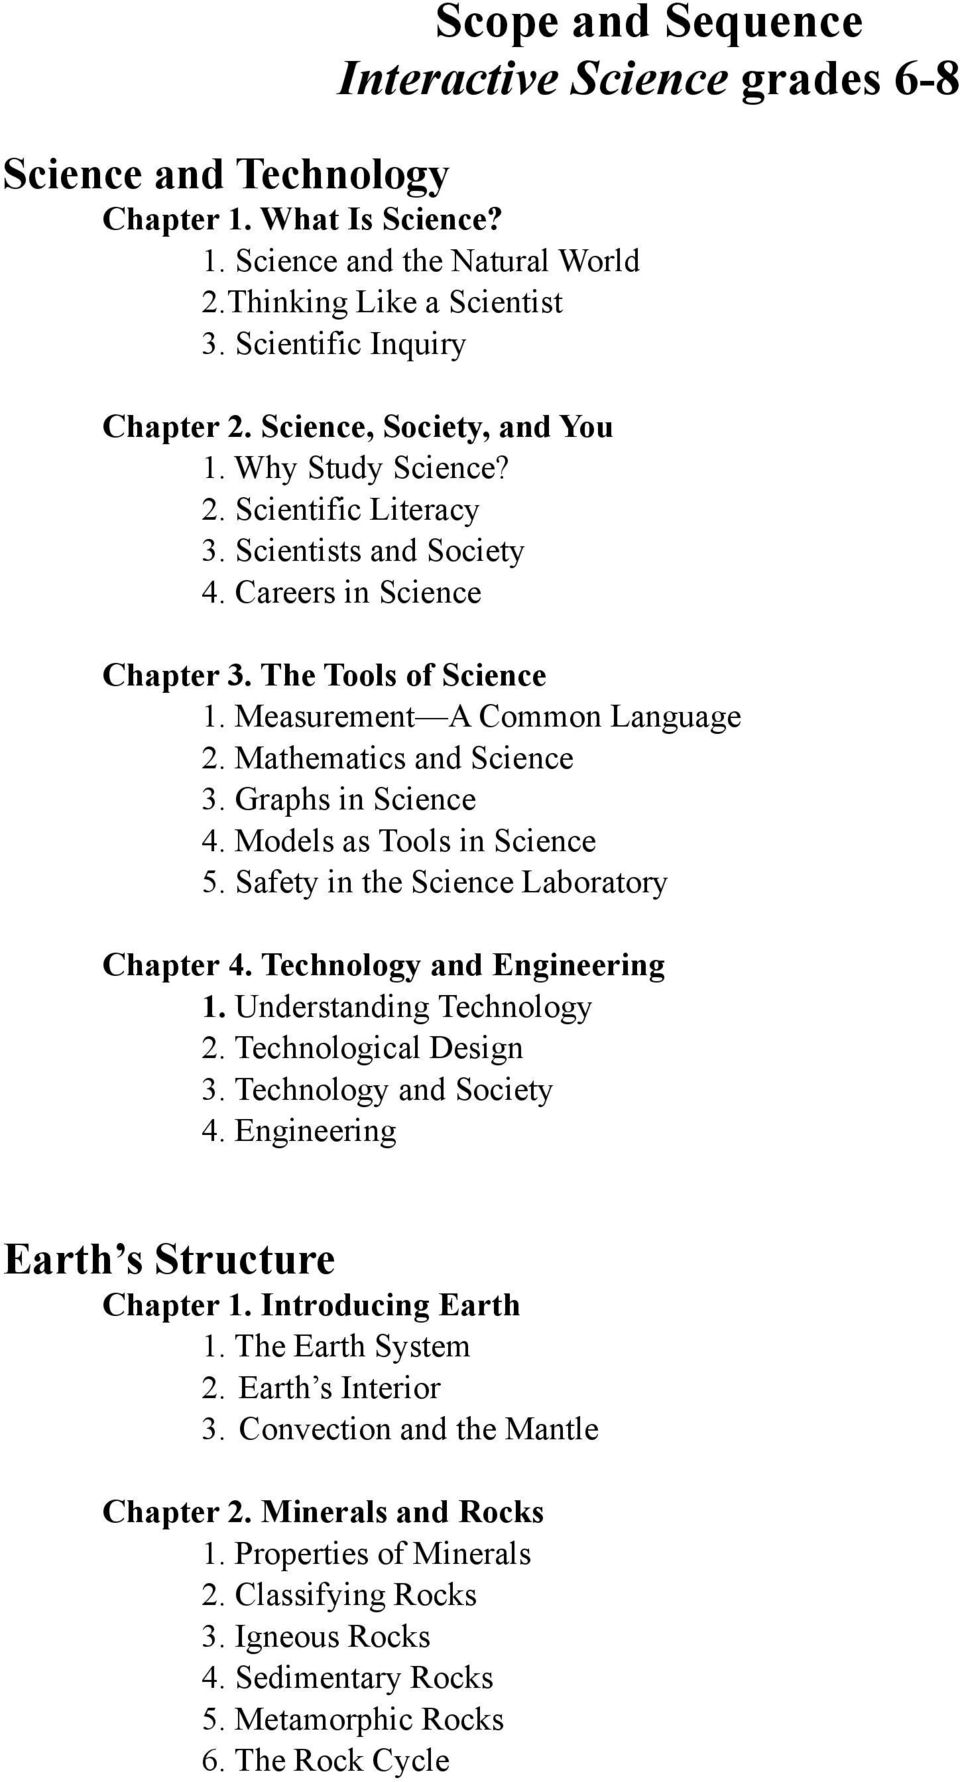 Scope and Sequence Interactive Science grades PDF